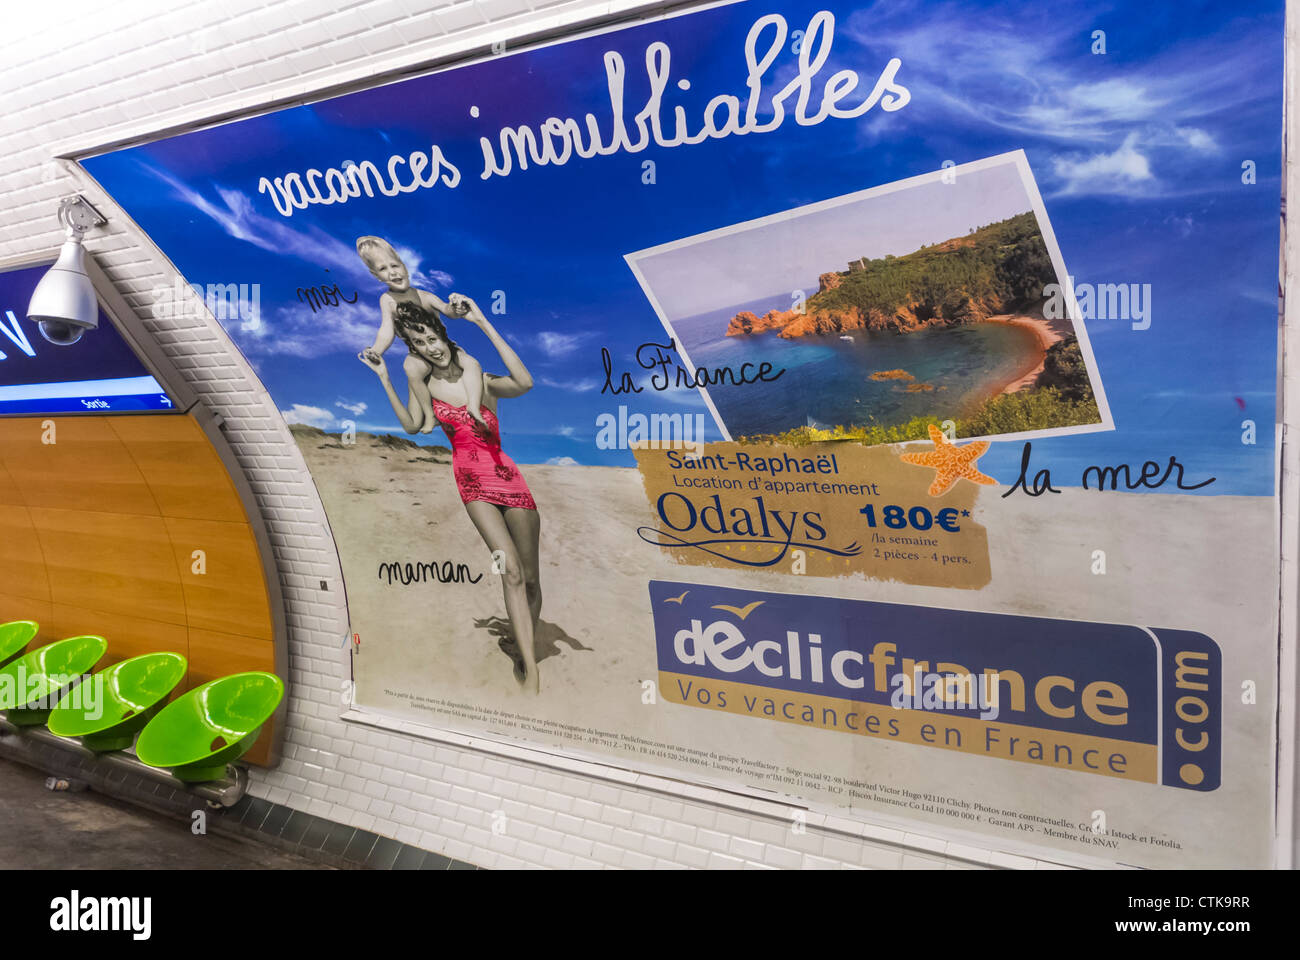 Paris, France, French Travel Advertising Billboards, Posters in Metro - Stock Image